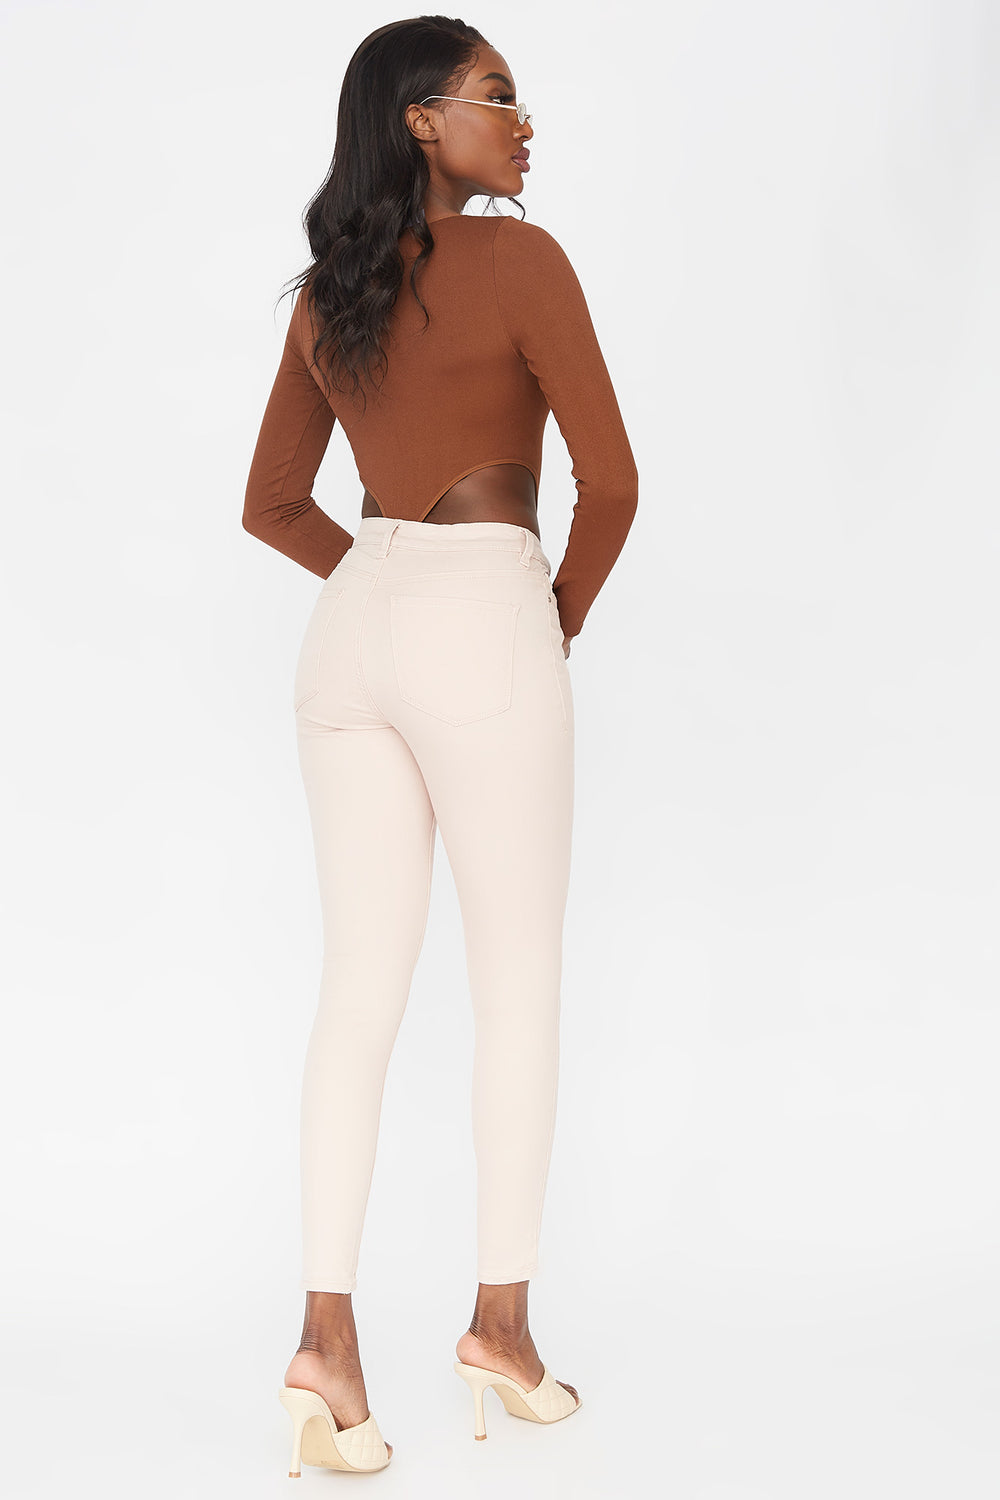 Refuge Miami High-Rise Coloured Skinny Jean Pink